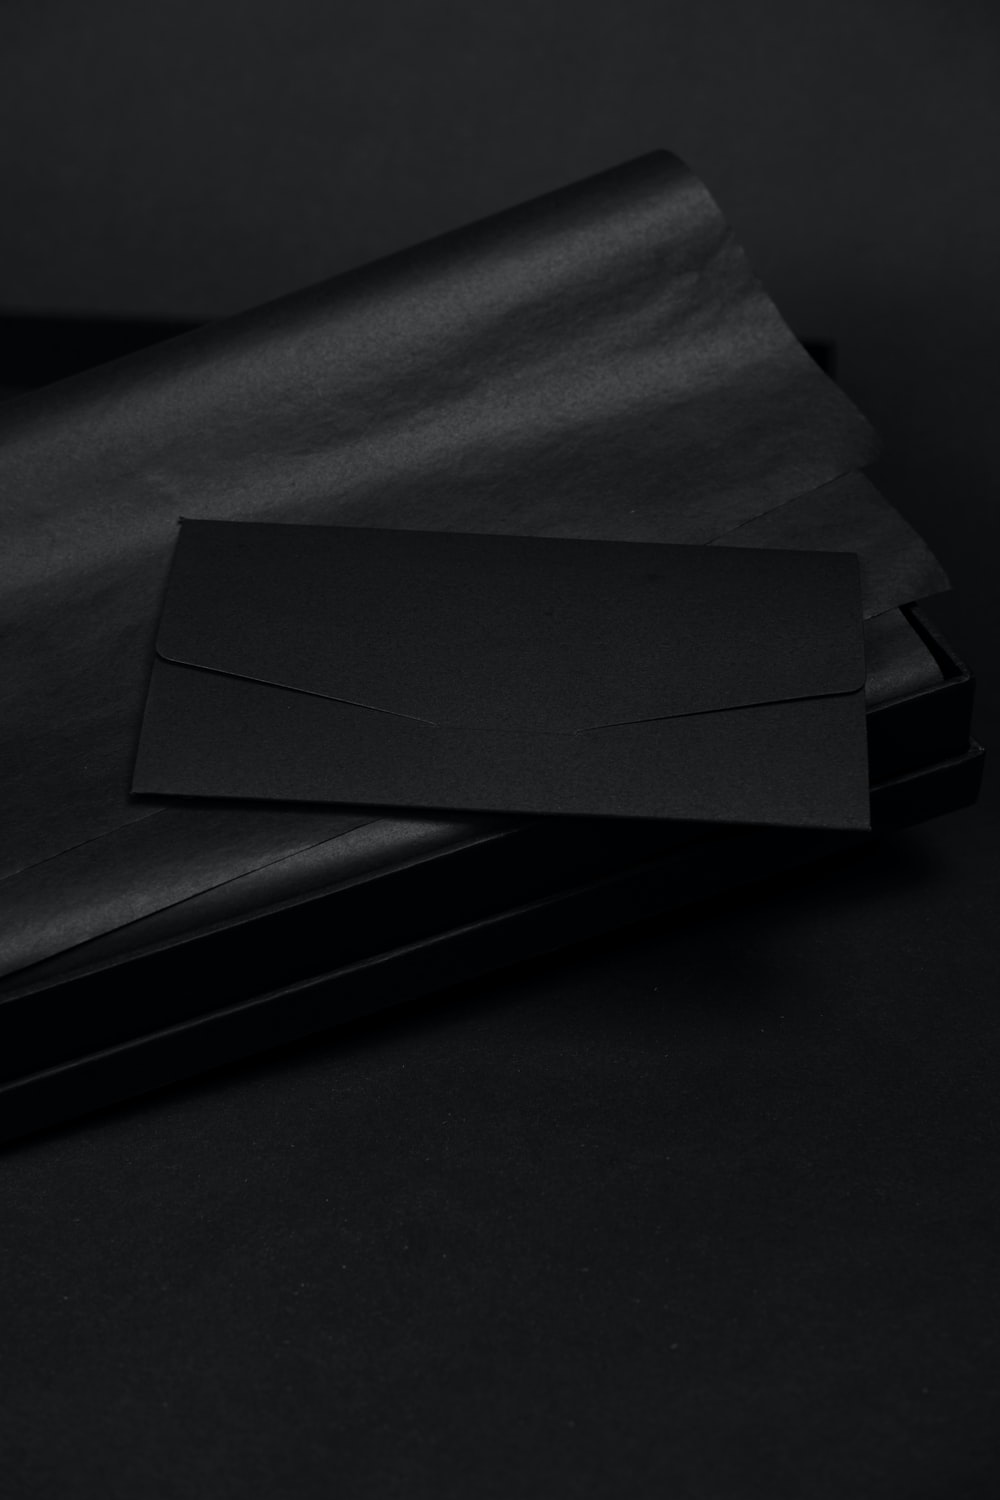 white paper on black surface